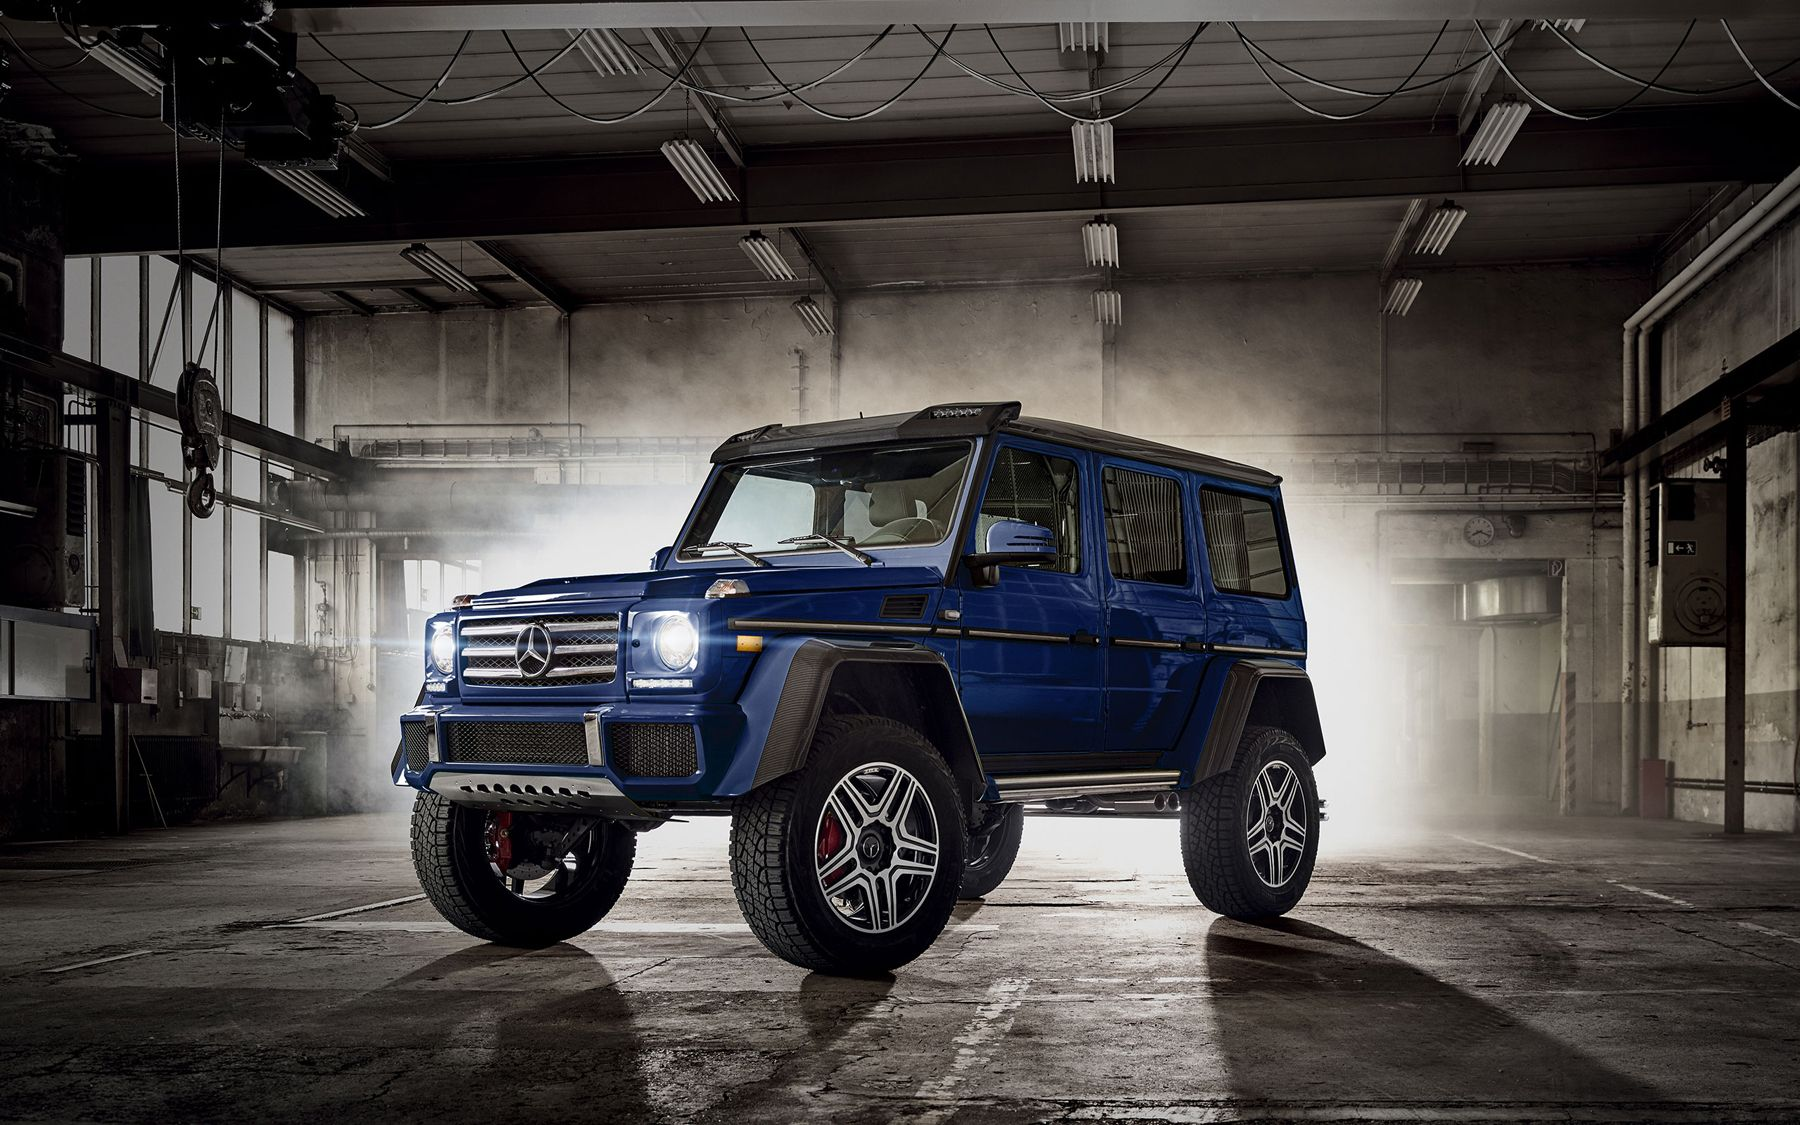 Elegant and rugged the versatile Mercedes 2017 G Class SUV is a